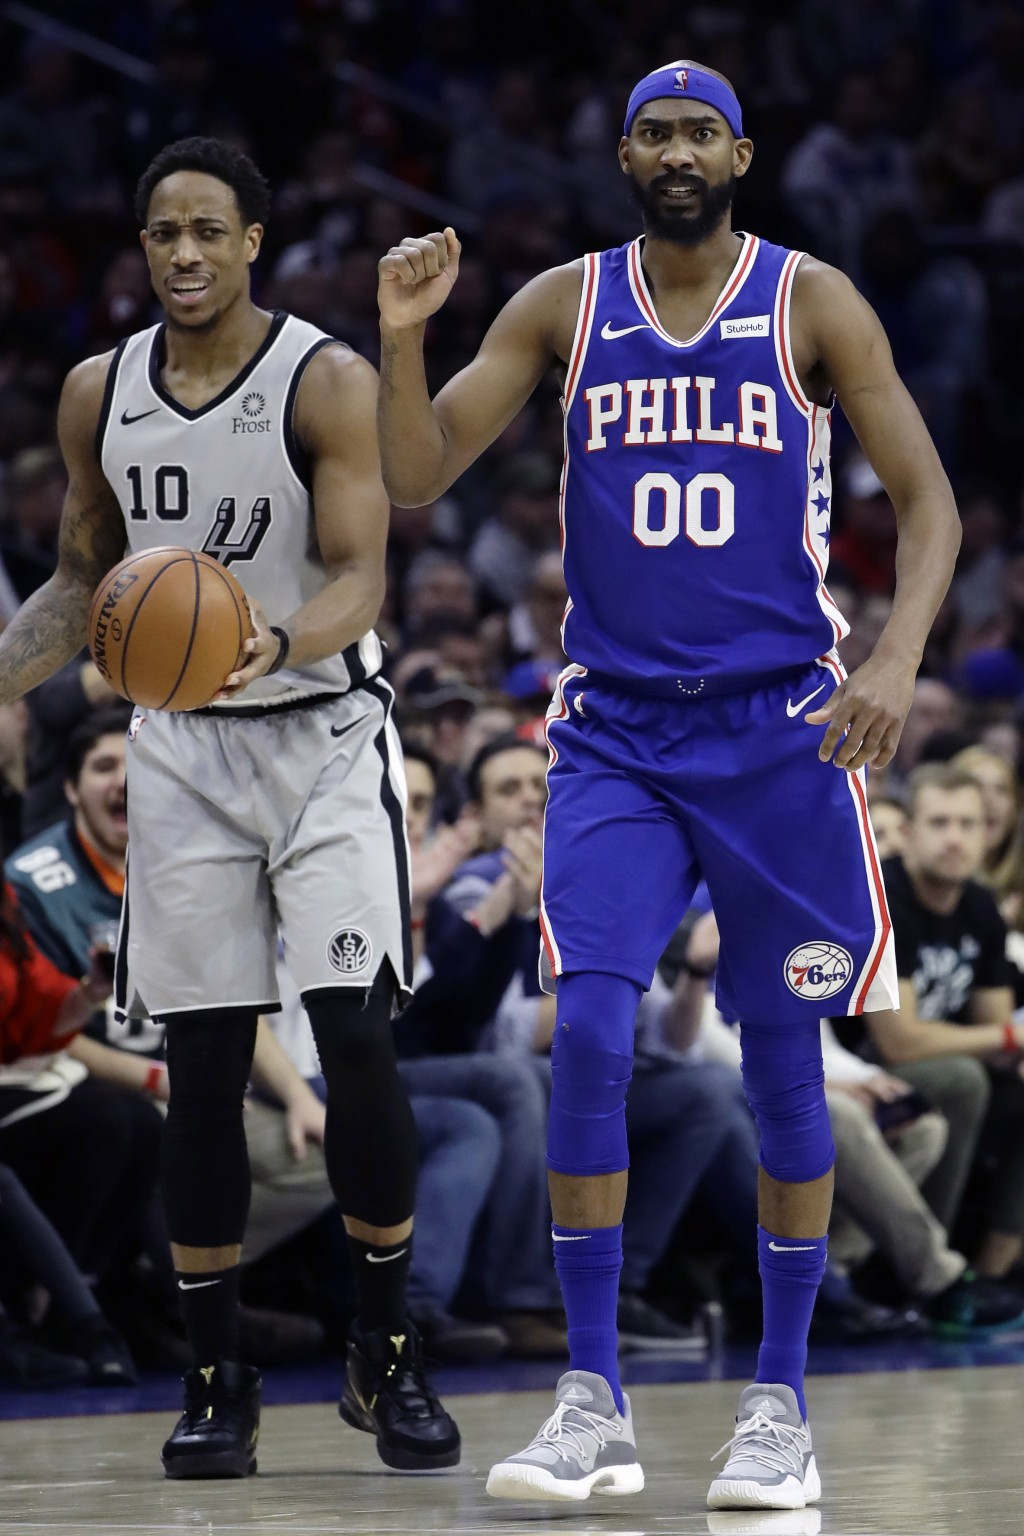 Philadelphia 76ers' Corey Brewer (00) reacts after forcing a turnover by San Antonio Spurs' DeMar DeRozan (10) during the first half of an NBA basketb...